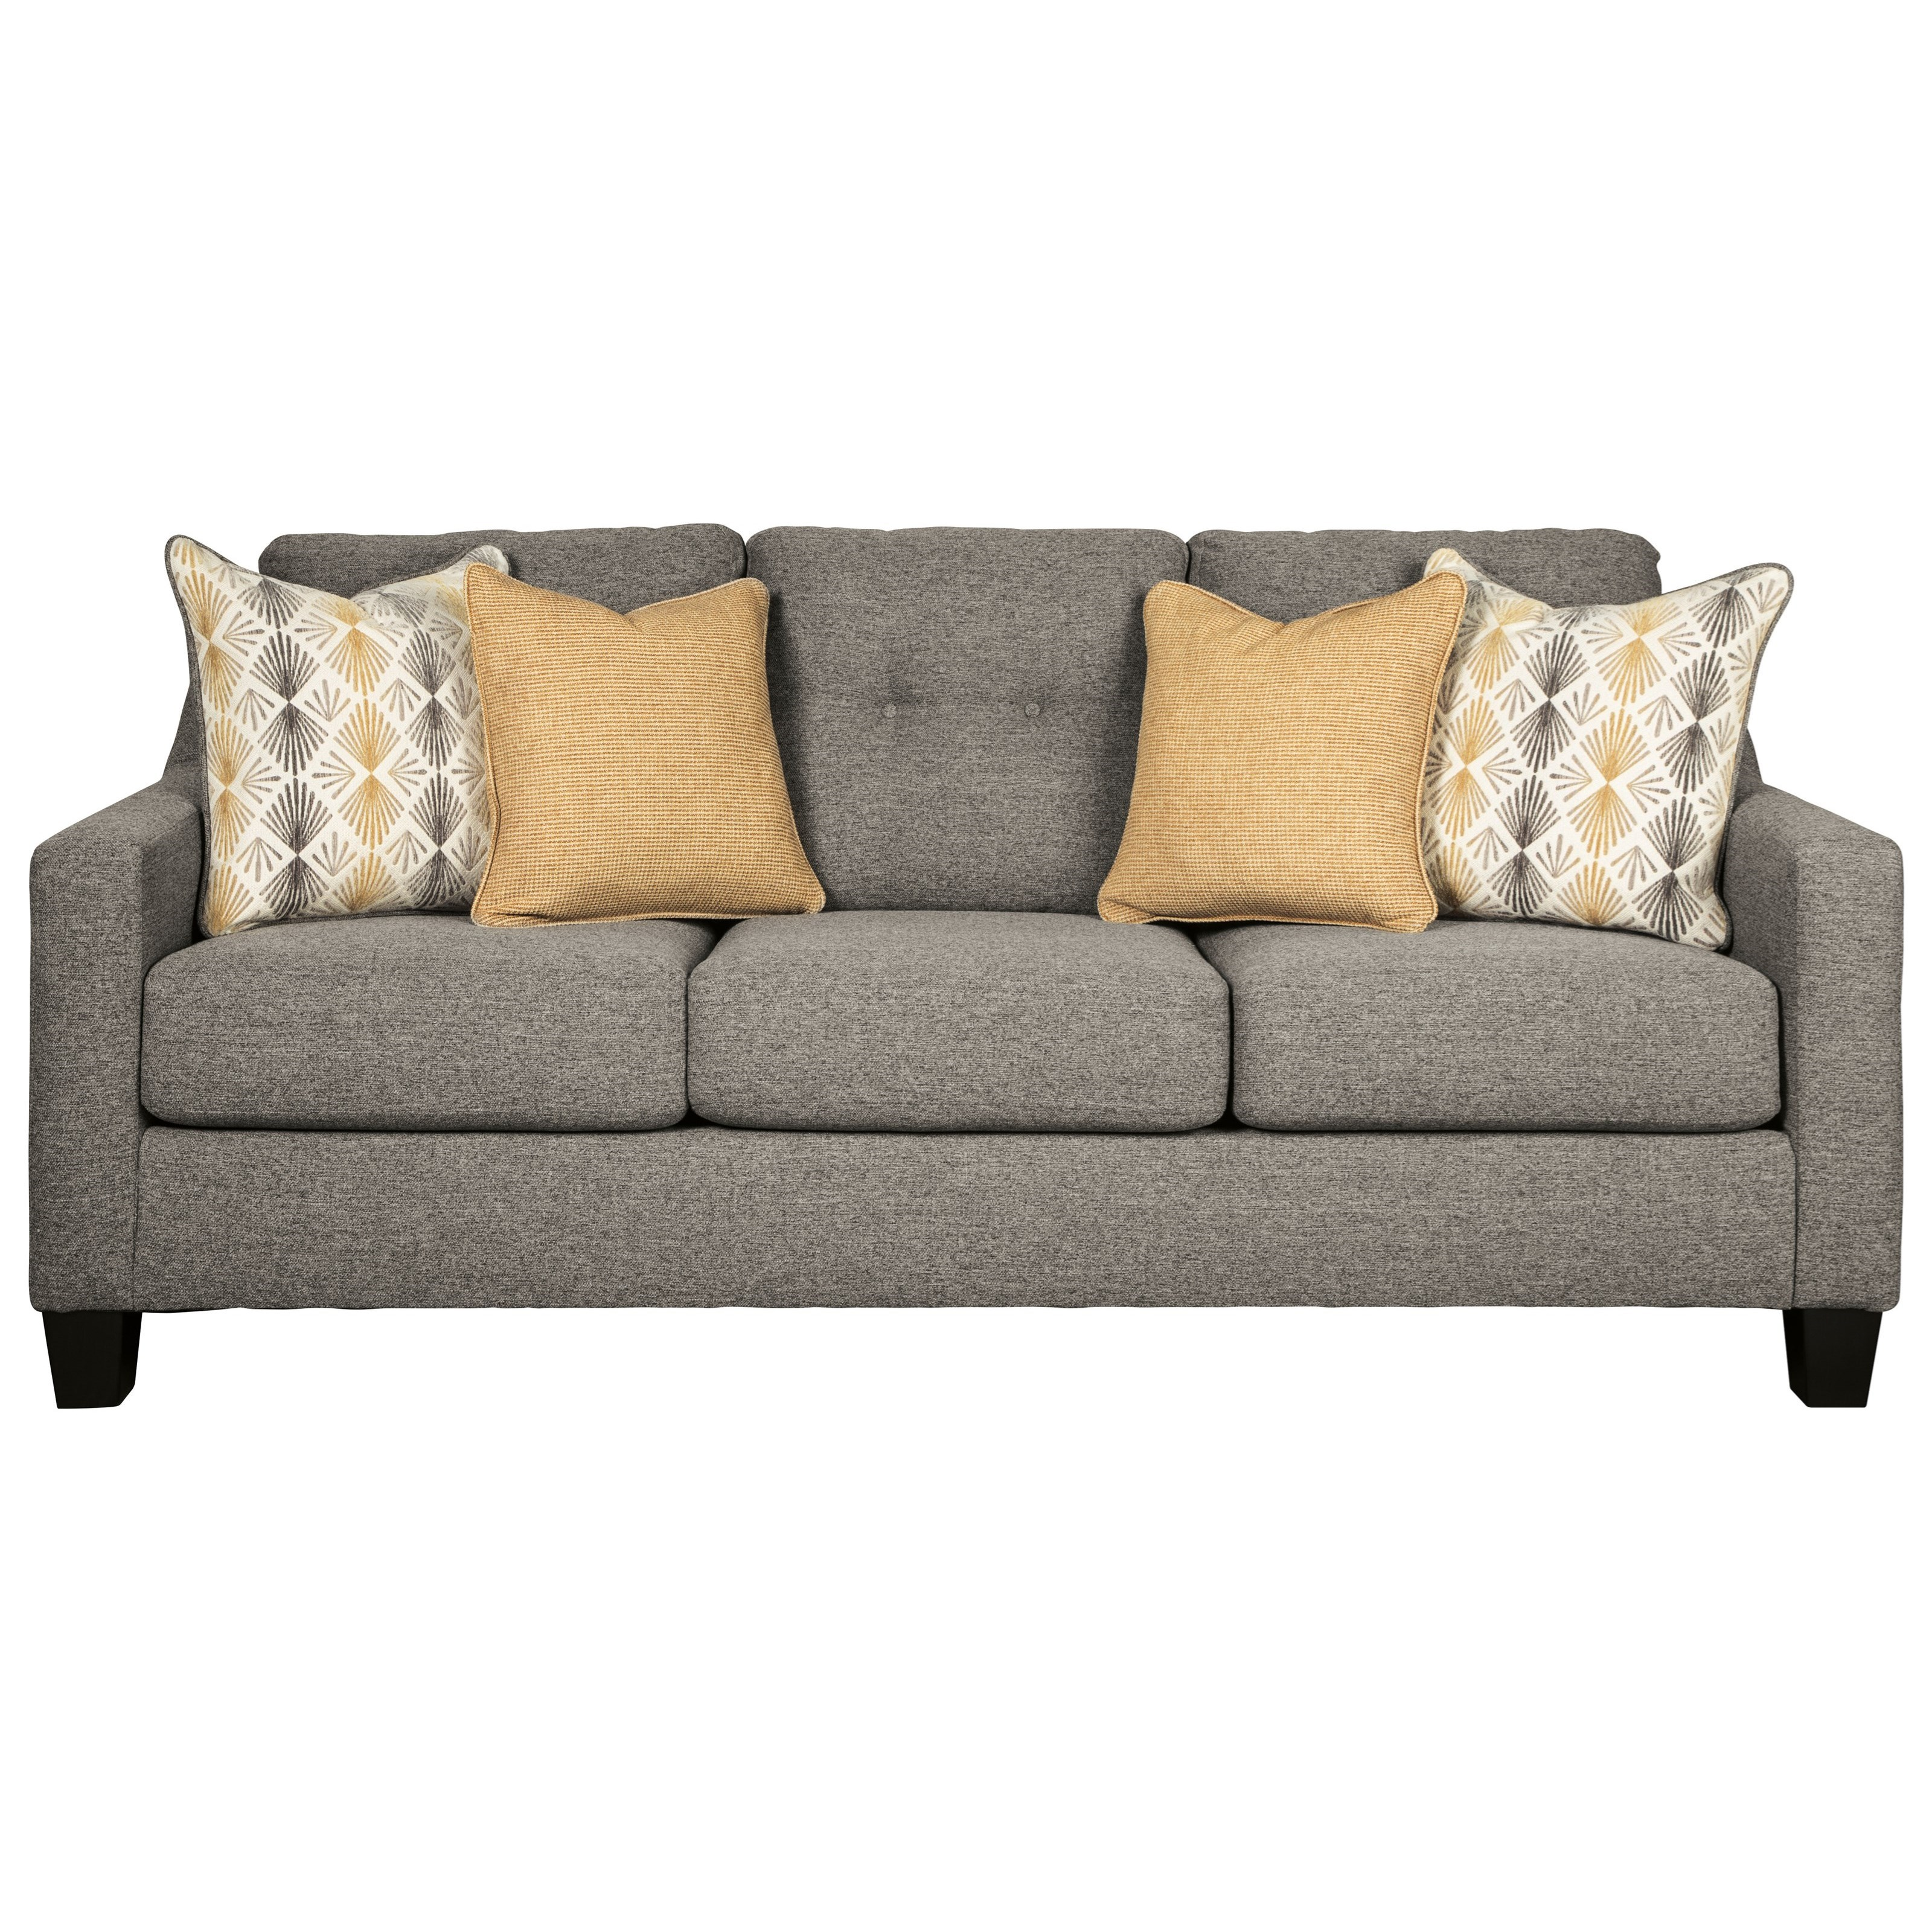 Daylon Queen Sofa Sleeper by Benchcraft at Rooms and Rest